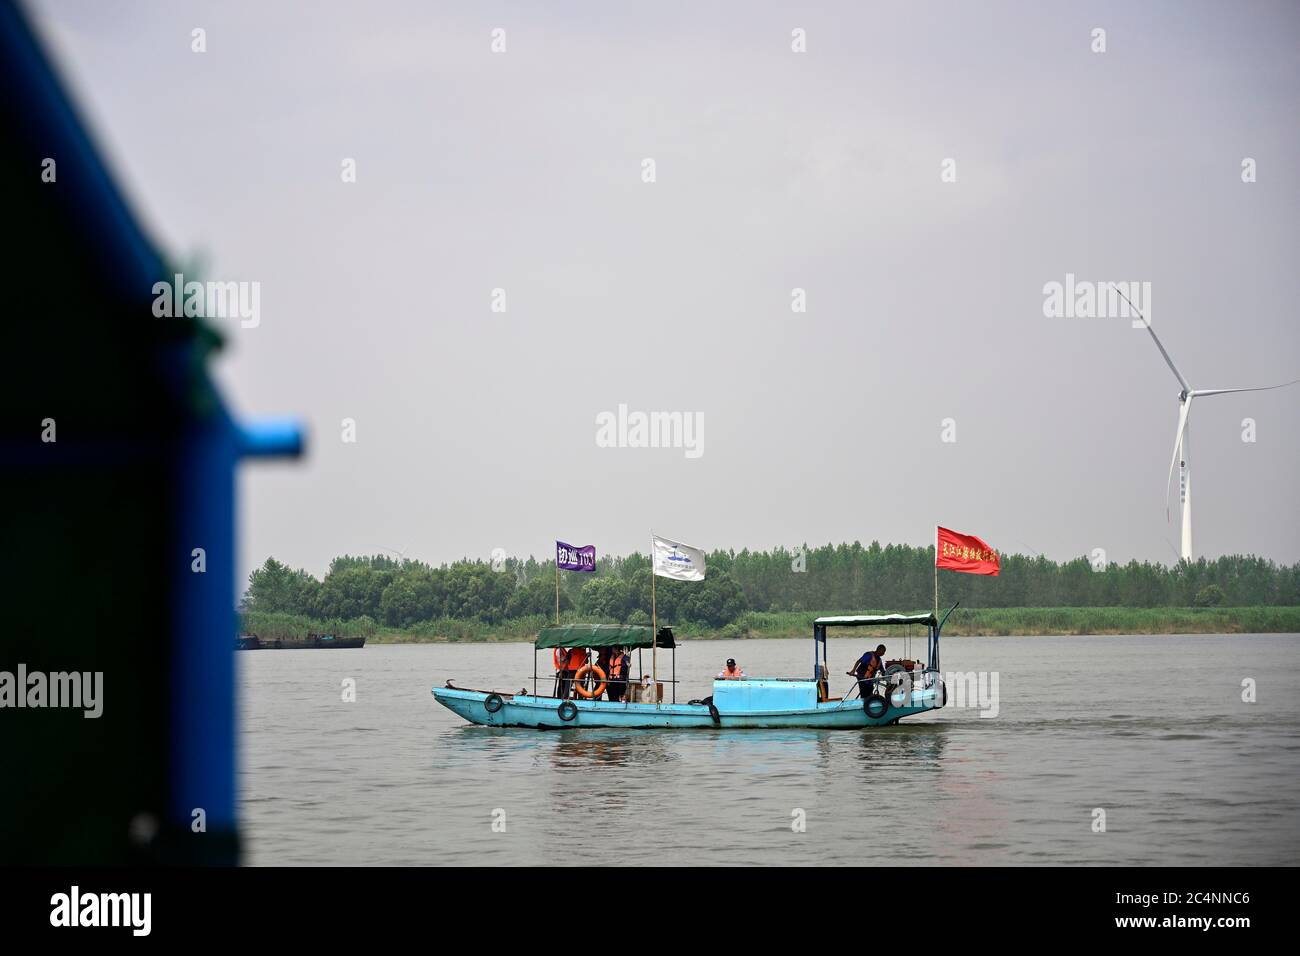 (200628) -- NANCHANG, June 28, 2020 (Xinhua) -- Members of a Yangtze finless porpoise protection team take part in a patrol mission on the Poyang Lake in Hukou County, east China's Jiangxi Province, June 8, 2020. Eight of the 11 team members are fishermen-turned finless porpoise protectors who patrol the Poyang Lake on a daily basis. Their missions include dismantling illegal fishing facilities and preventing unlawful activities that damage the Poyang Lake's fisheries resources. China began a 10-year fishing moratorium from the beginning of this year in 332 conservation areas in the Yangtze Ri Stock Photo